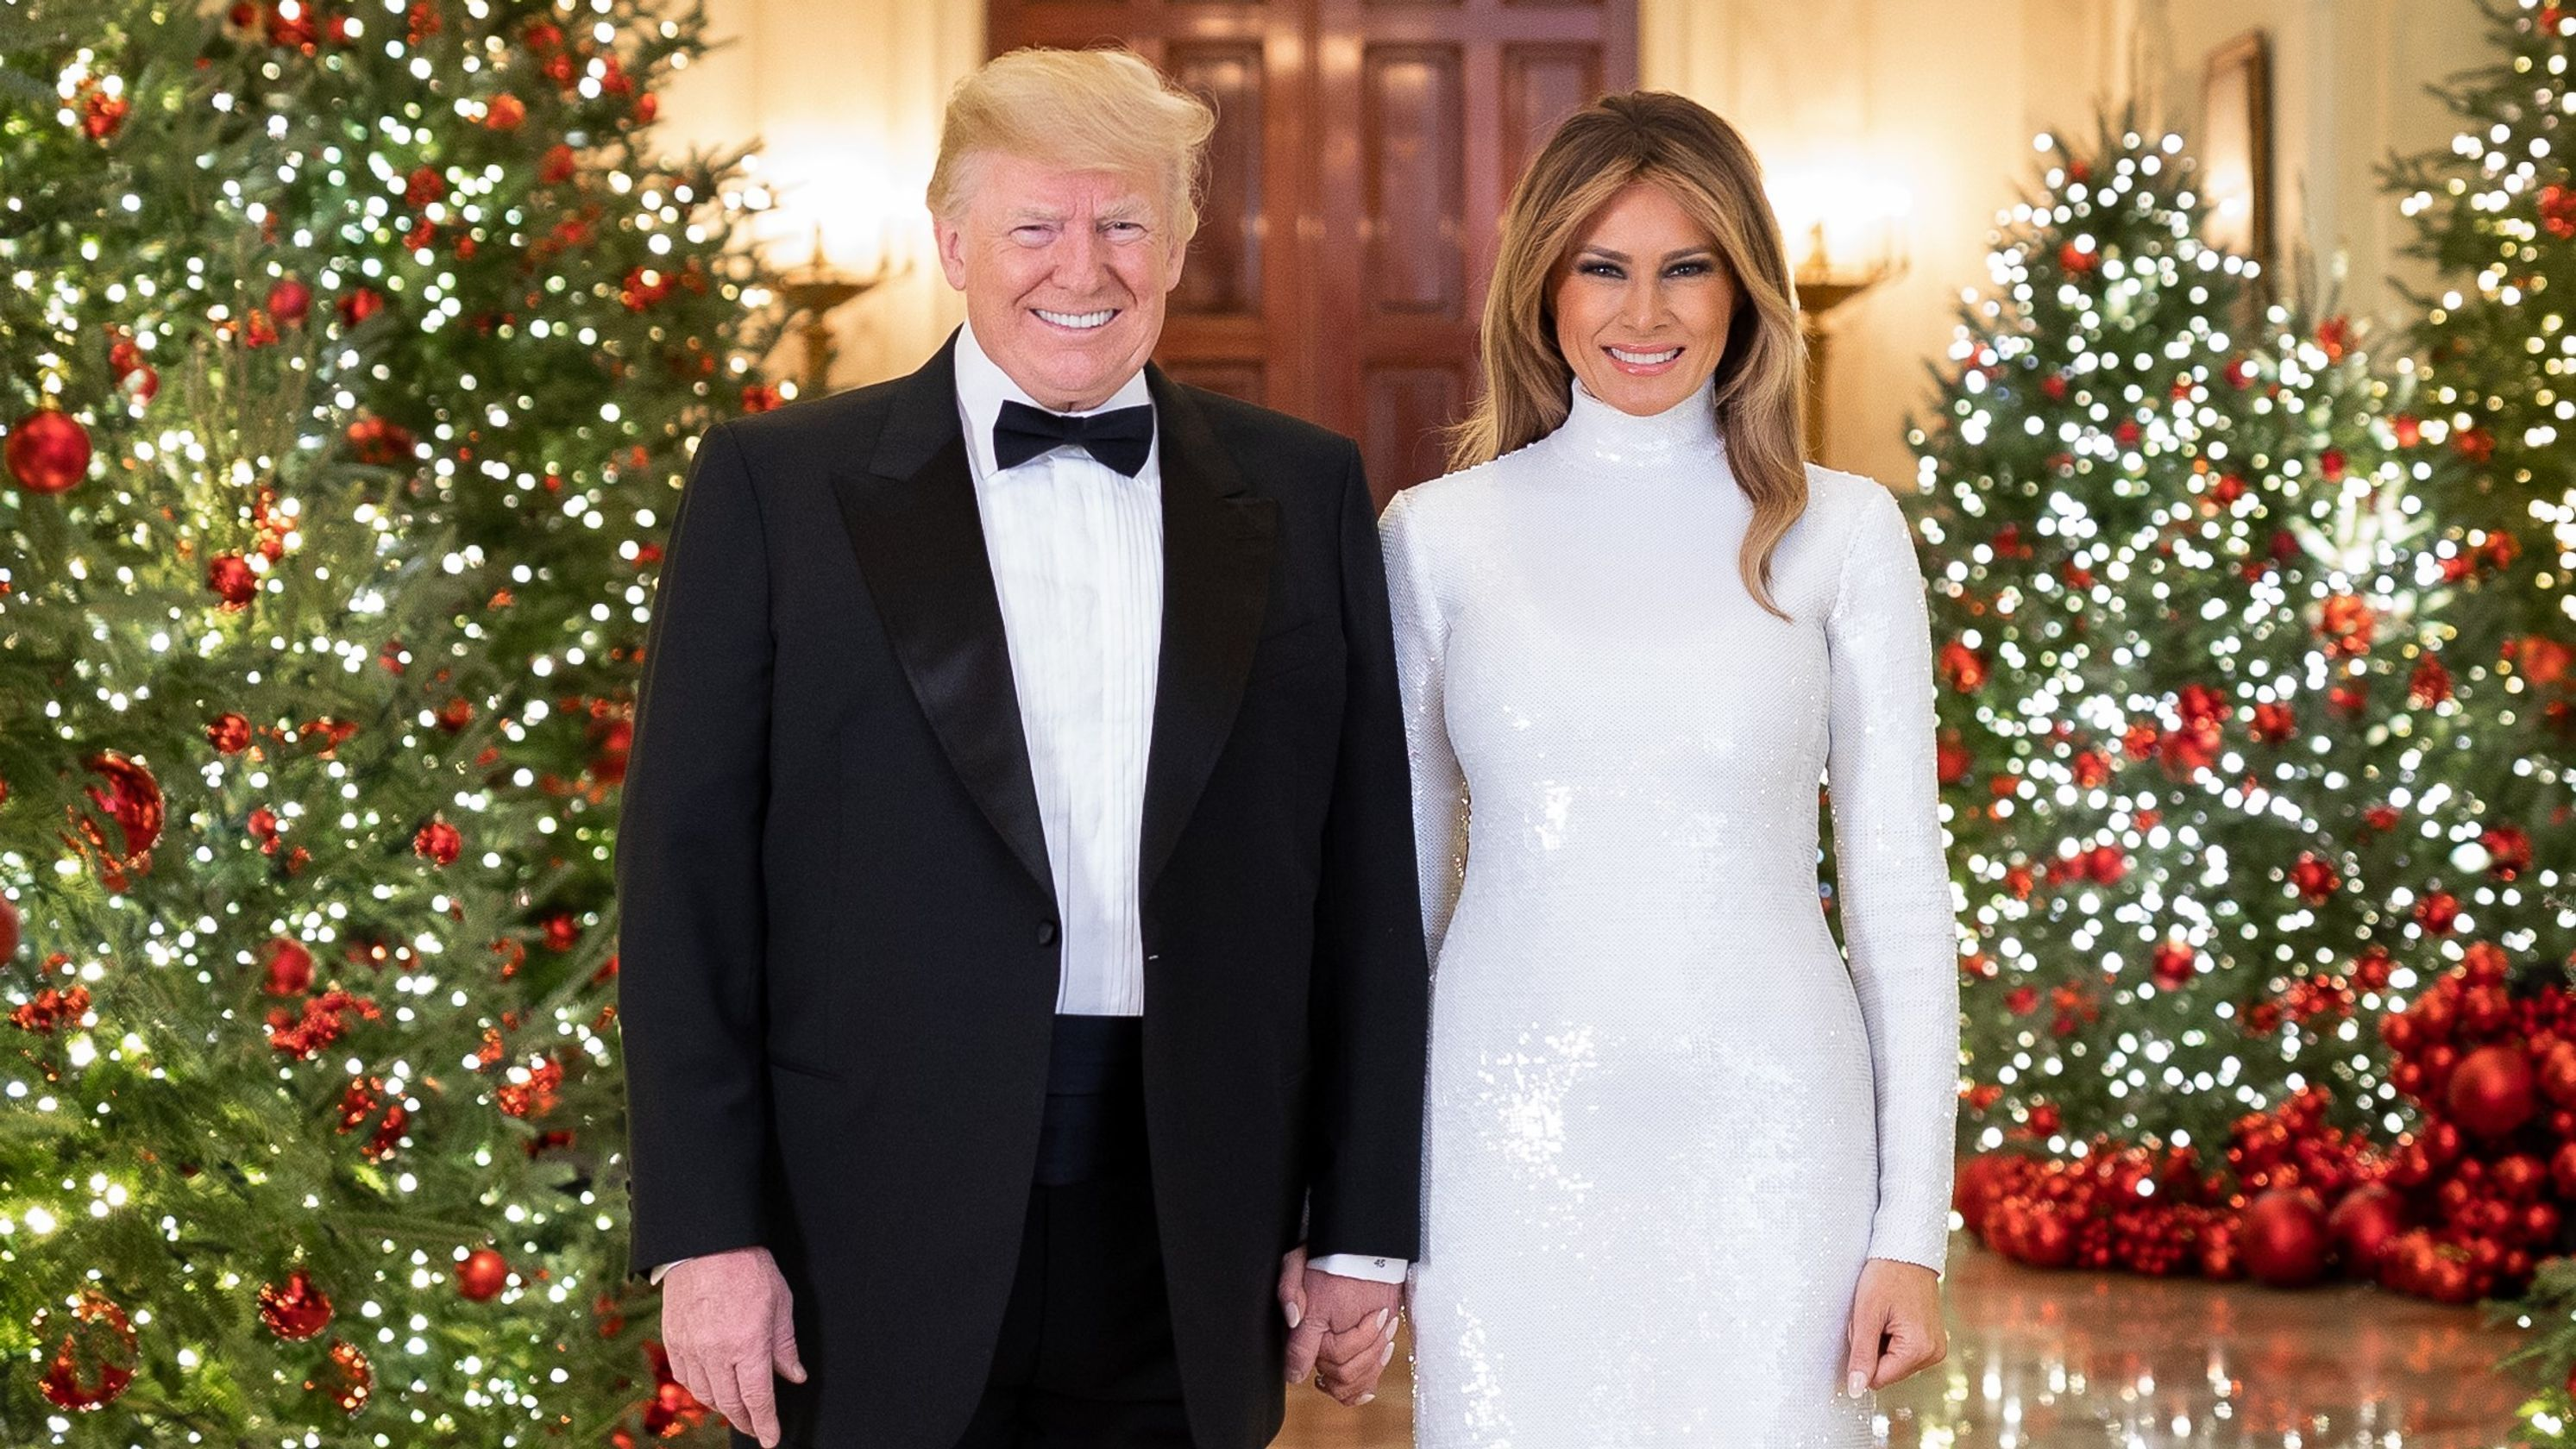 Donald and Melania Trump Christmas Portrait